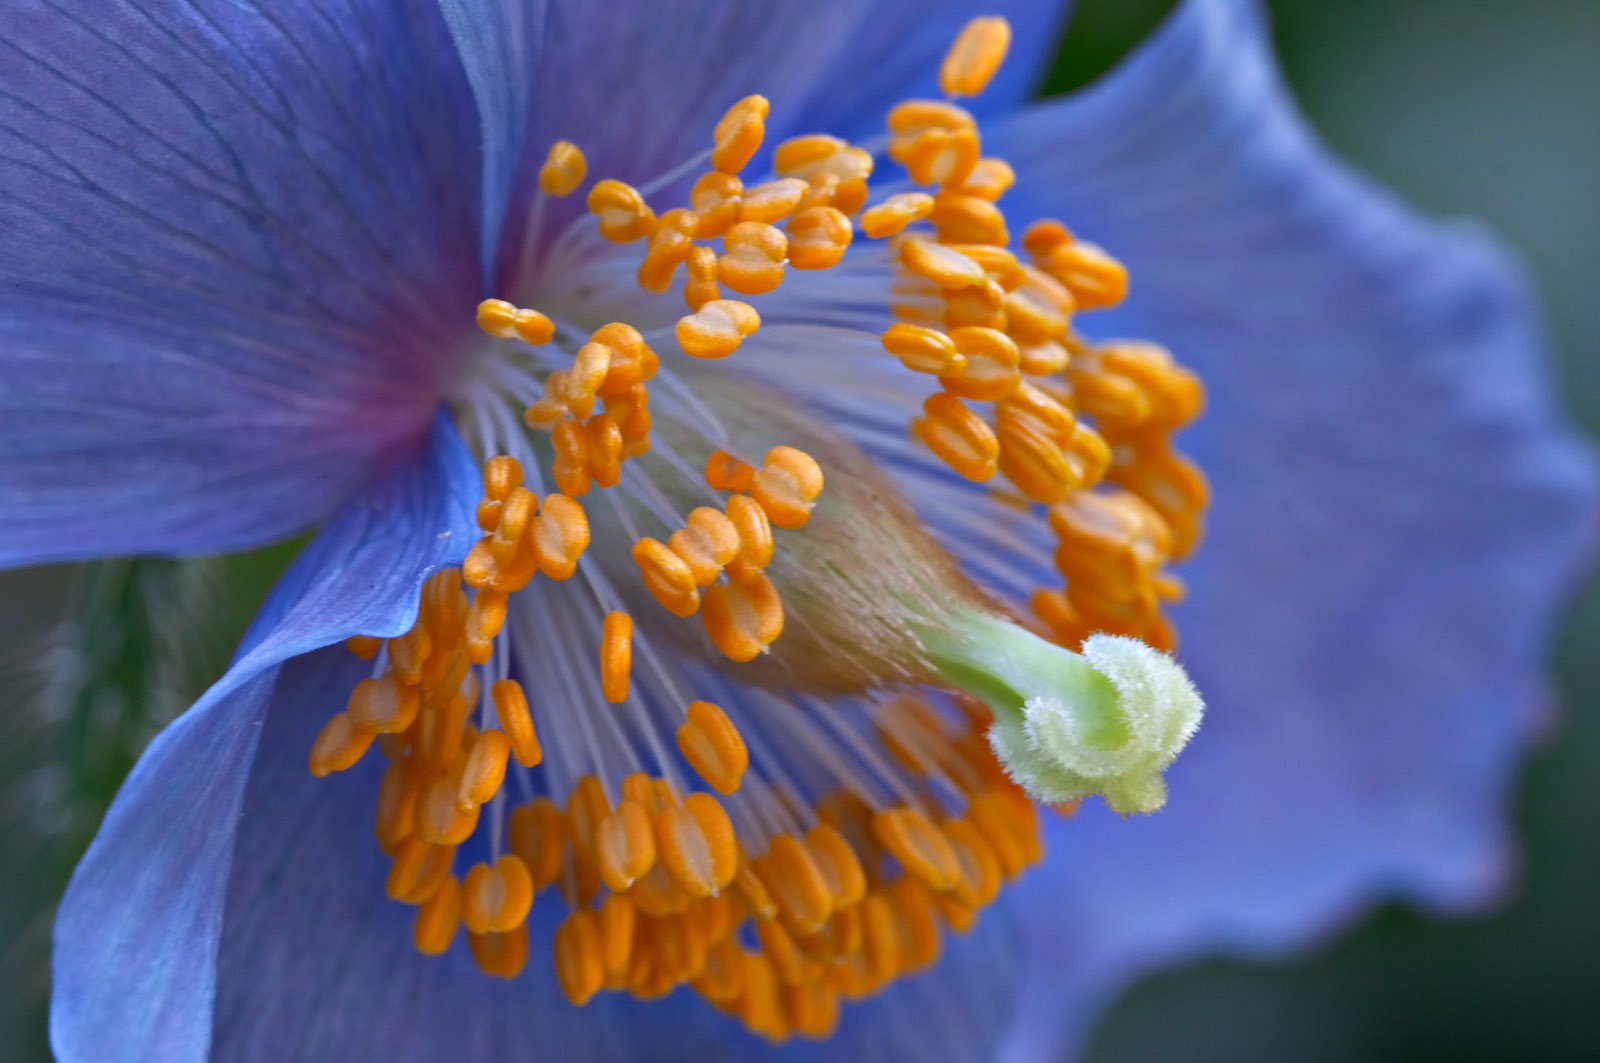 Close-up of <i>Meconopsis betonicifolia</i>